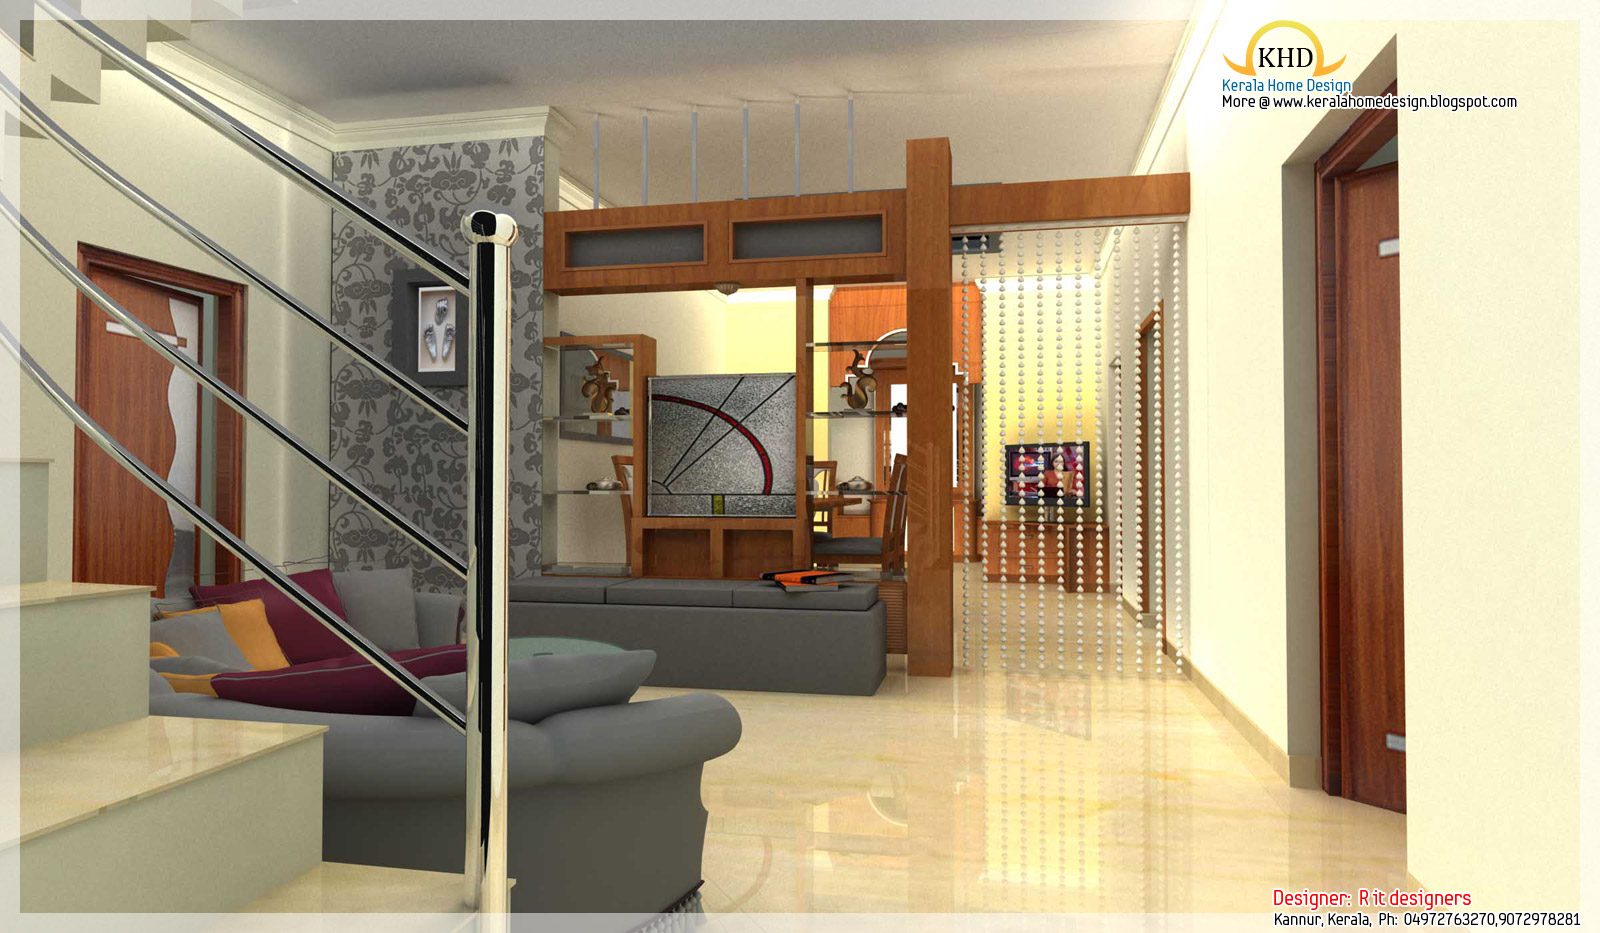 Home interior design kerala style for Kerala home interior